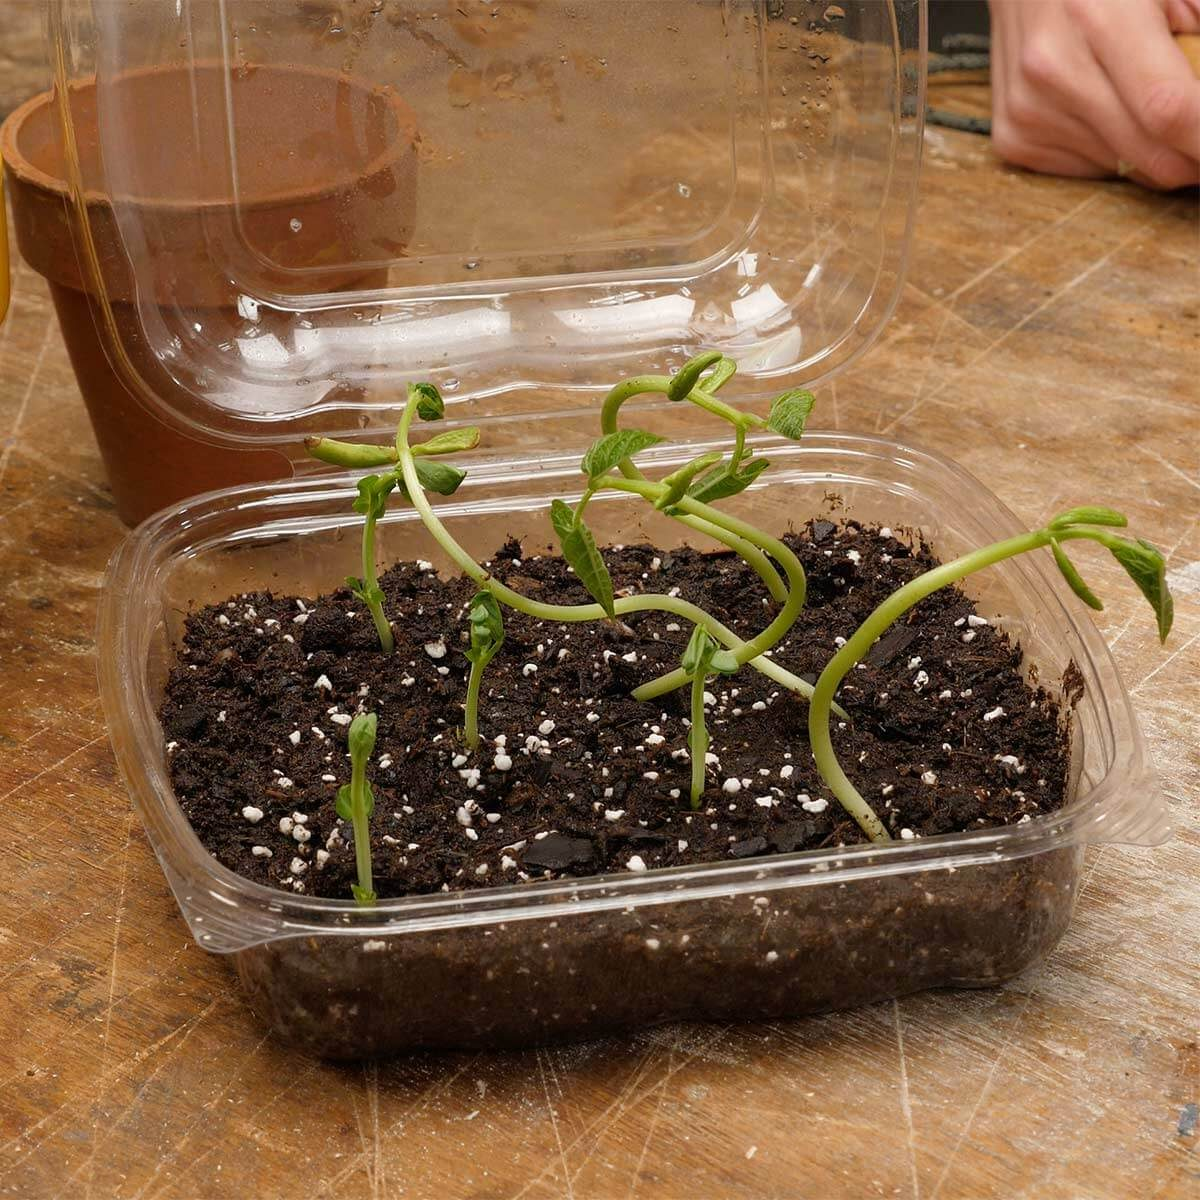 seedlings growing in plastic clamshell container from salad bar HH